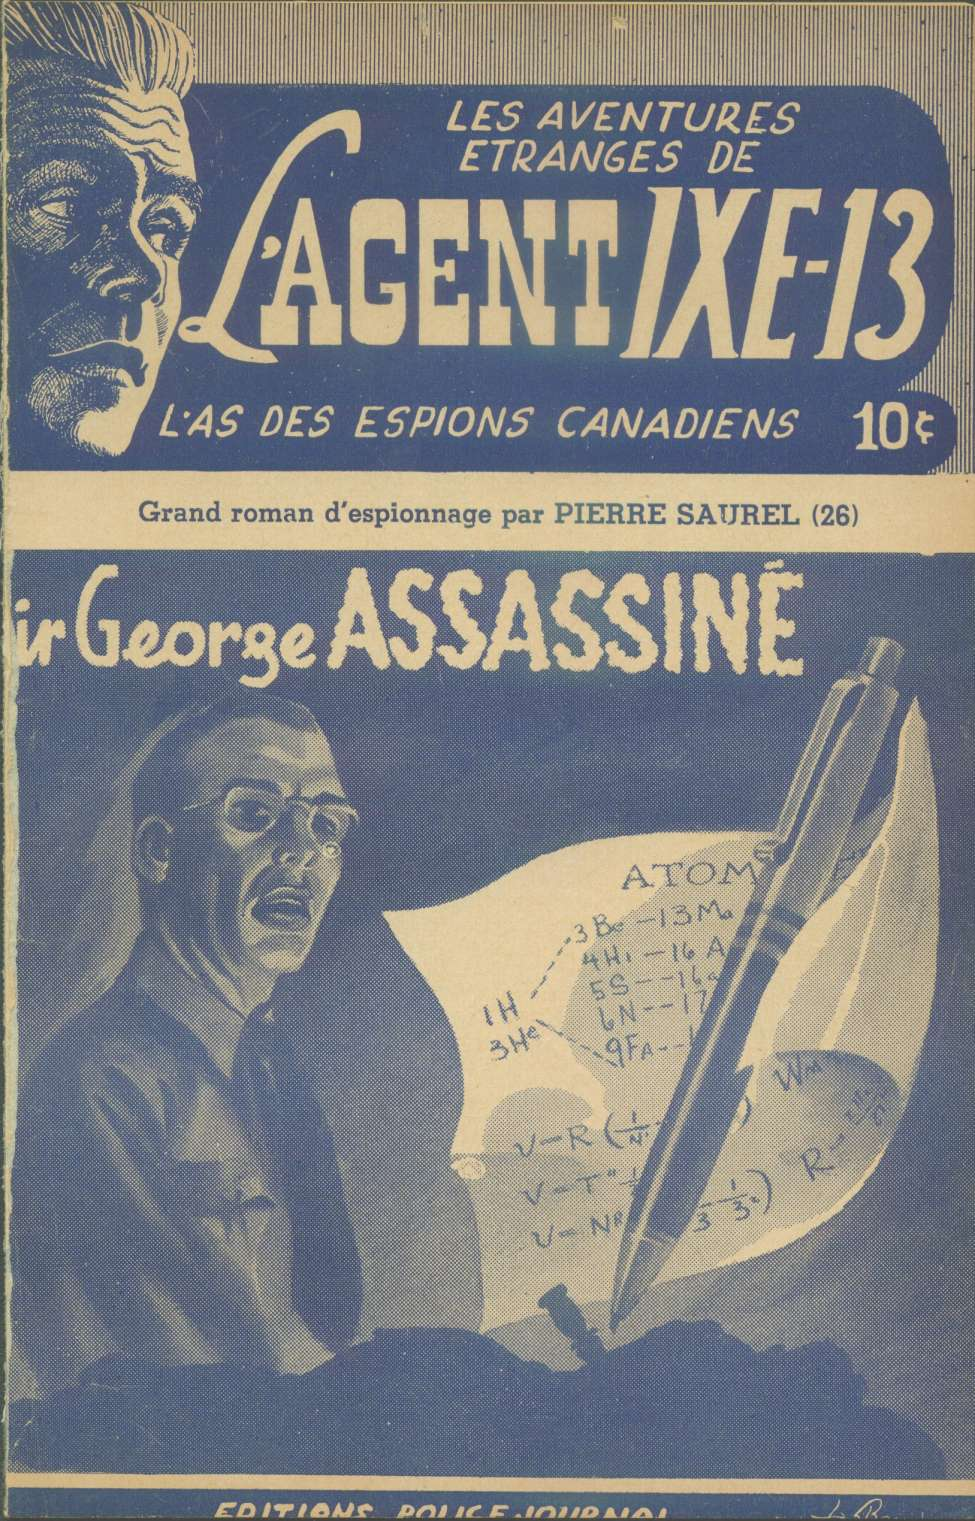 Comic Book Cover For L'Agent IXE-13 v2 026 - Sir George assassiné